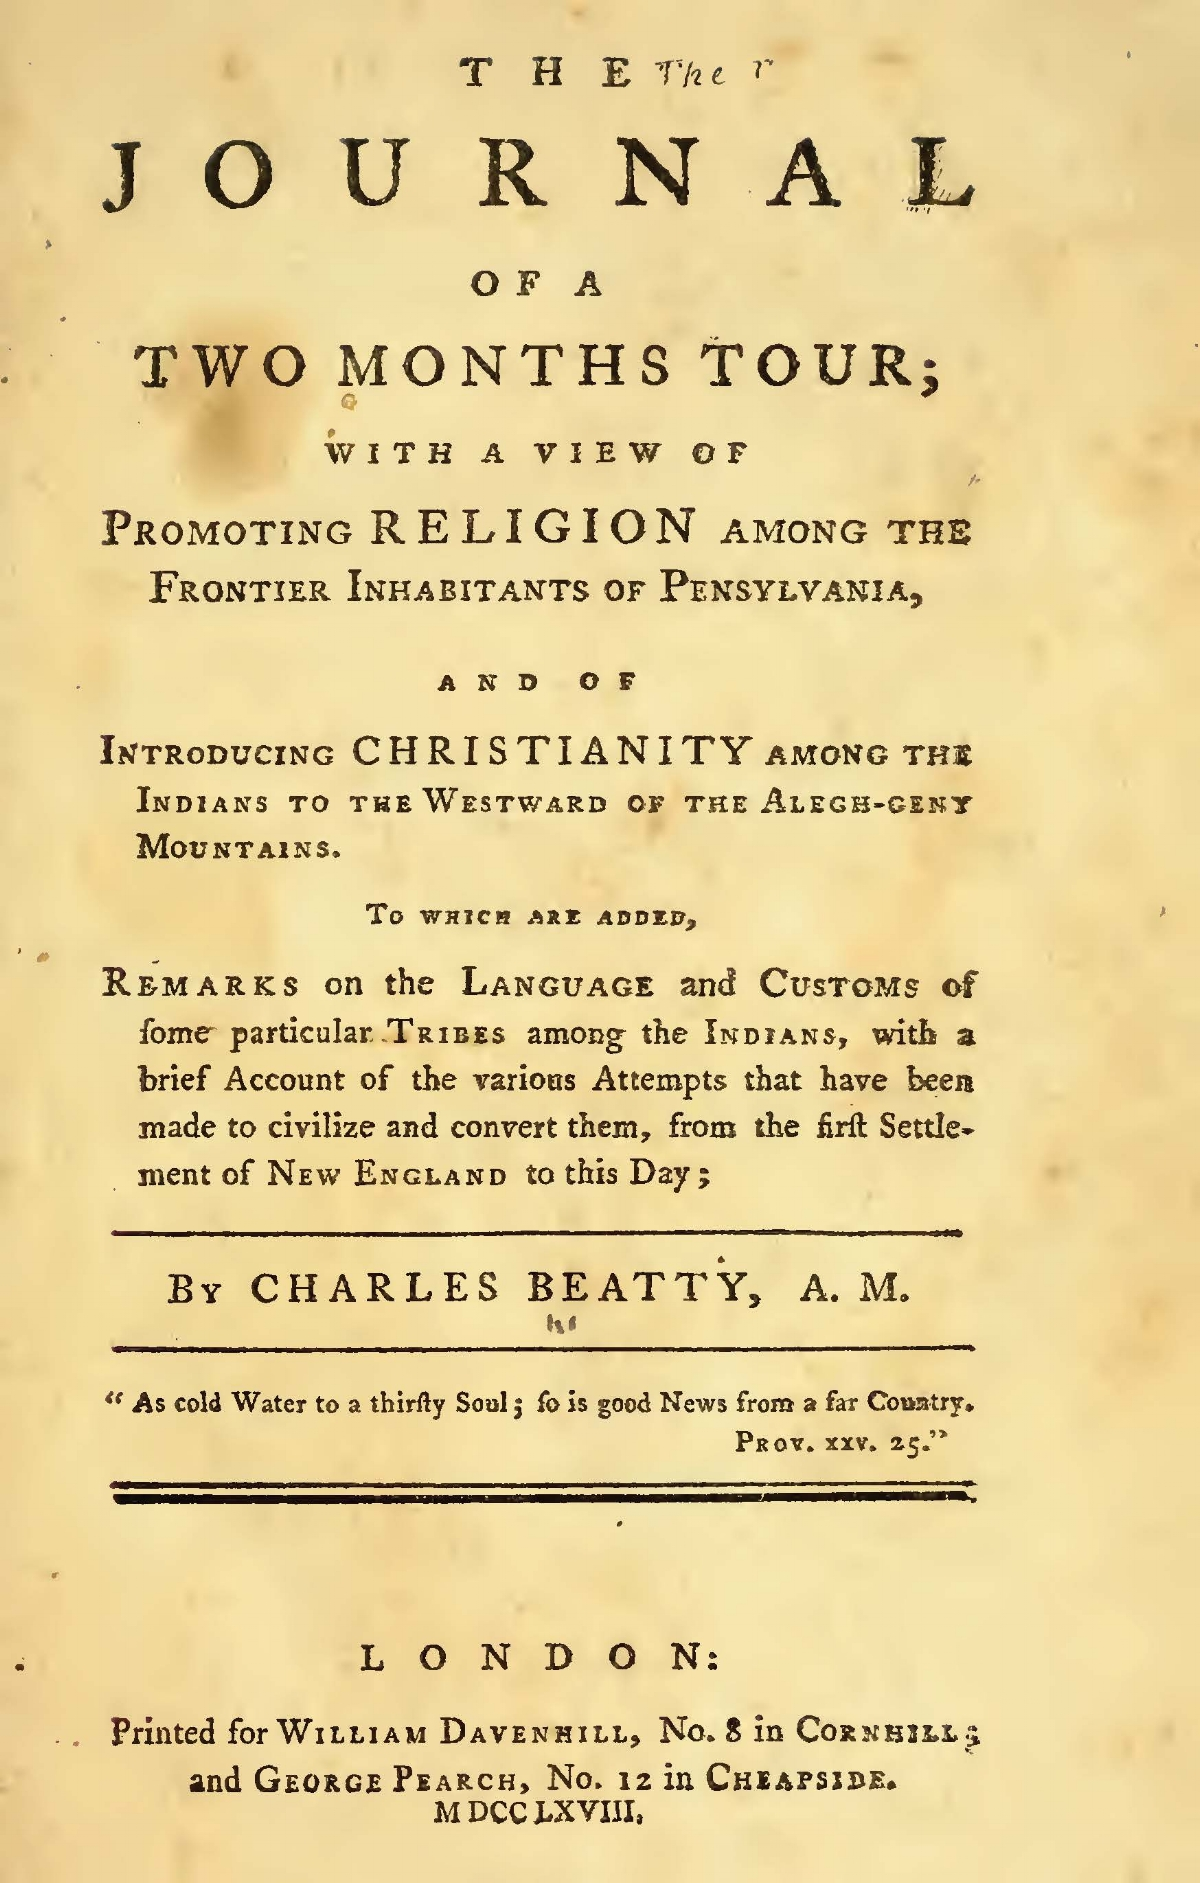 Beatty, Charles Clinton, The Journal of a Two Months Tour Title Page.jpg